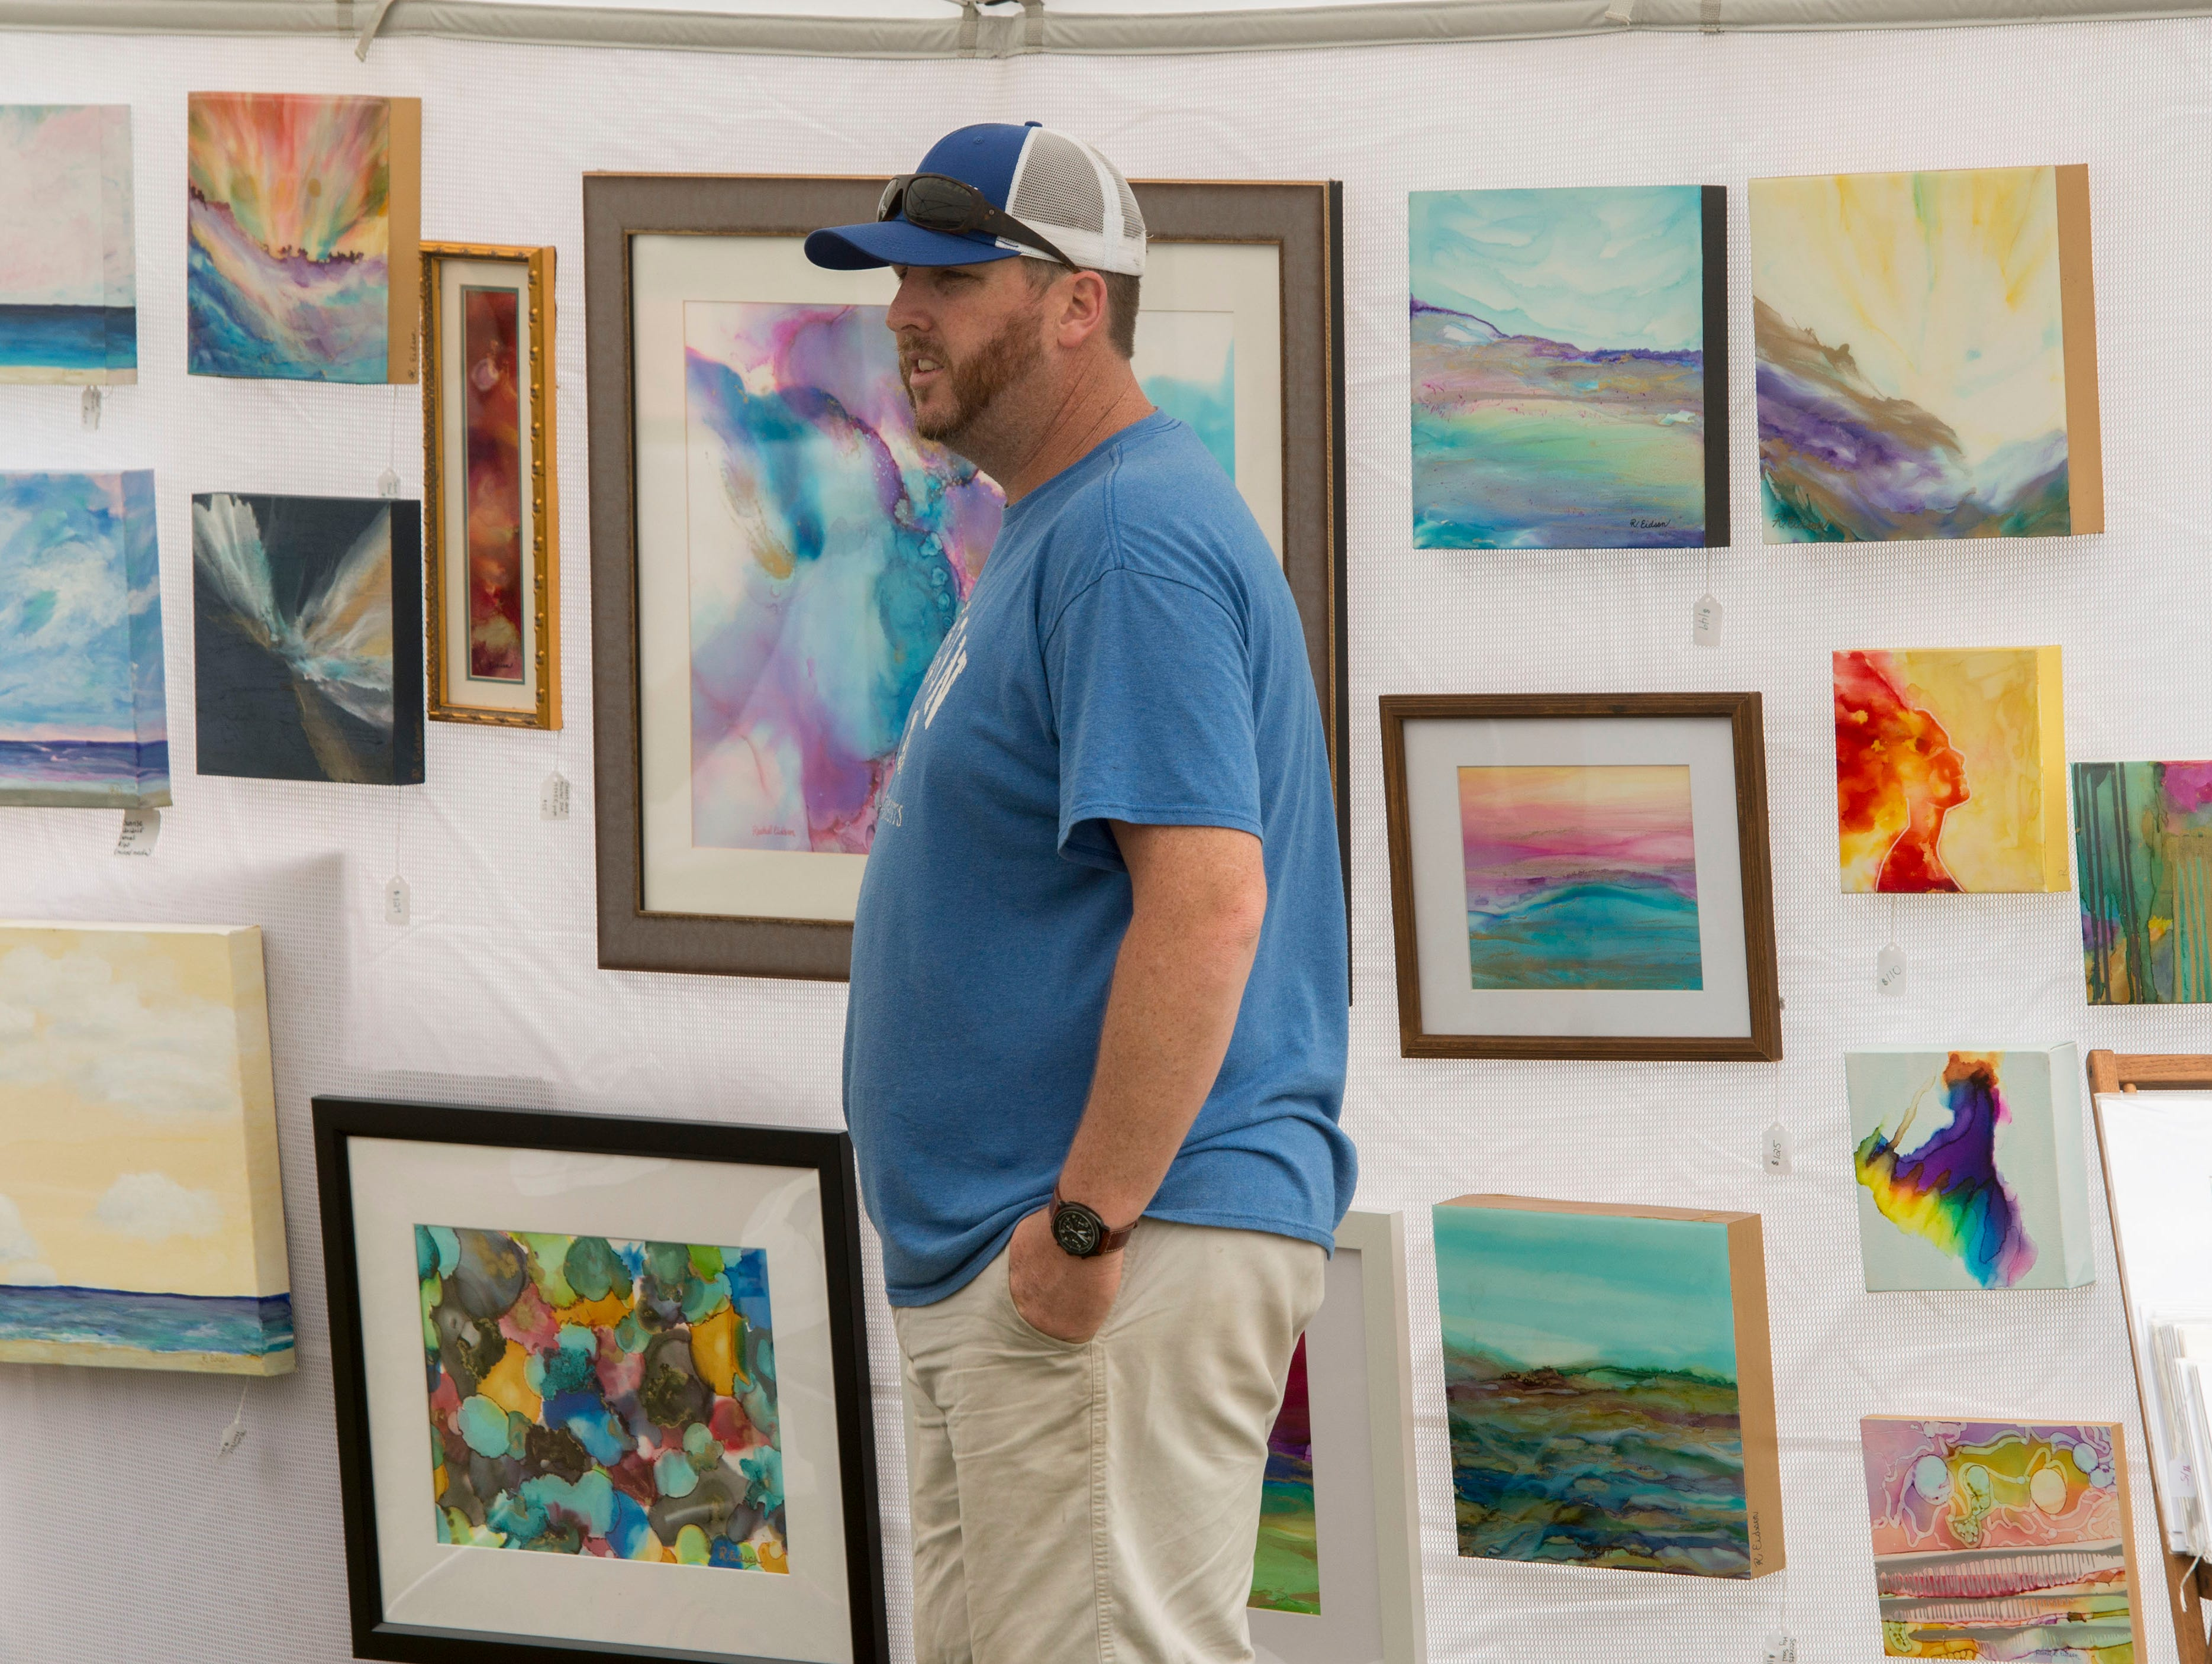 Visitors enjoy Art on the Green Saturday, April 13, 2019 at the Pensacola Country Club Tennis Center. Art on the Green is an exciting one-day arts festival that aims to increase awareness and acceptance of the talents and gifts of individuals with autism along the Gulf Coast. The event  included artists from across the region and nation, including artists with autism. The family-friendly event included a Kid Zone, performing arts stage, and artist vendor booths.Funds raised by this event directly benefit the mission and programs of Autism Pensacola, Inc.